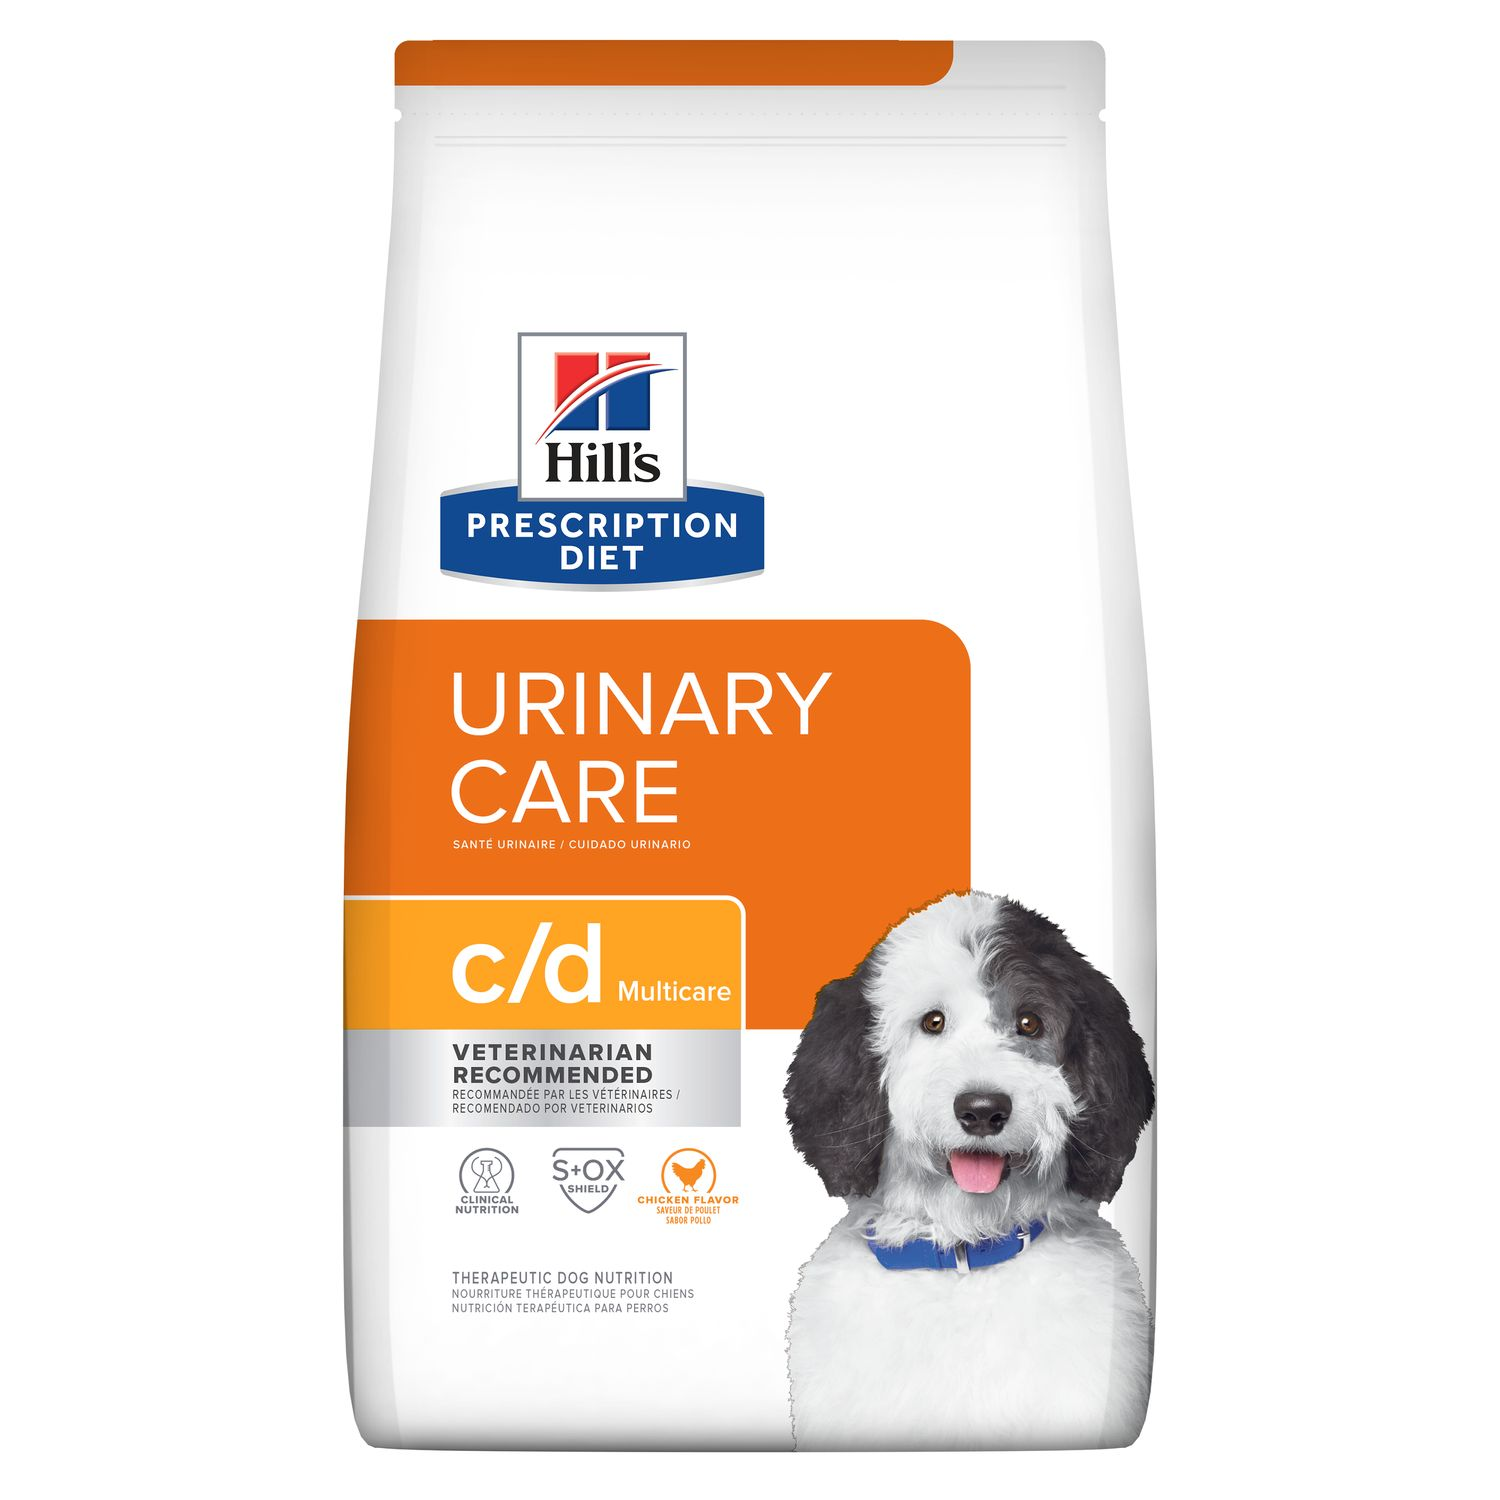 cd and urinary multicare pet food science diet